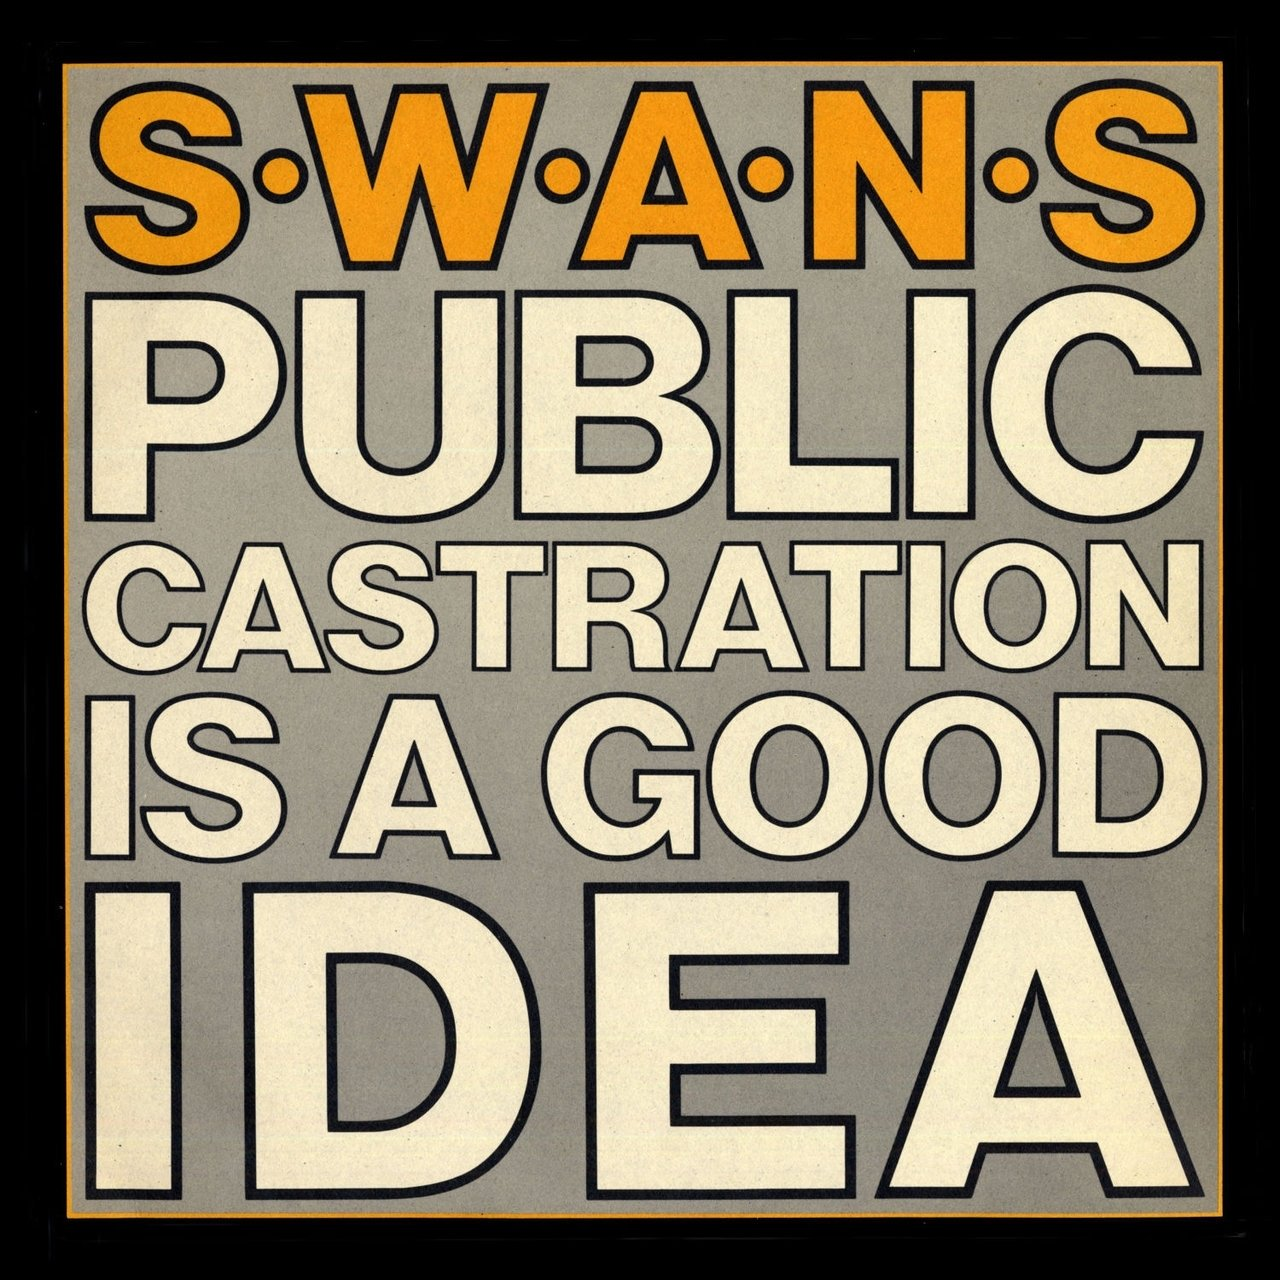 10 Beautiful Public Castration Is A Good Idea tidal listen to swans on tidal 2021